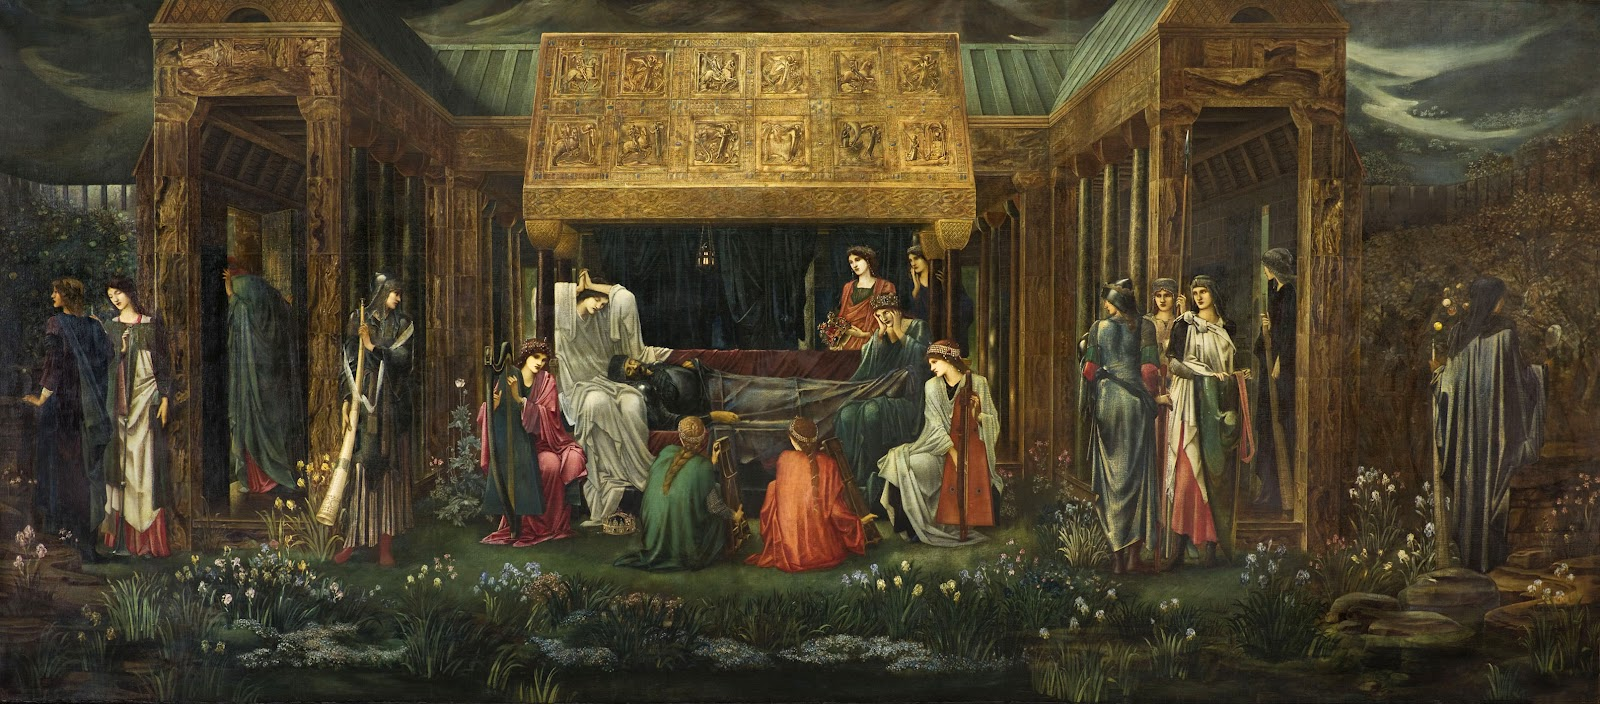 Edward Burne-Jones, The Sleep of King Arthur in Avalon (1898)